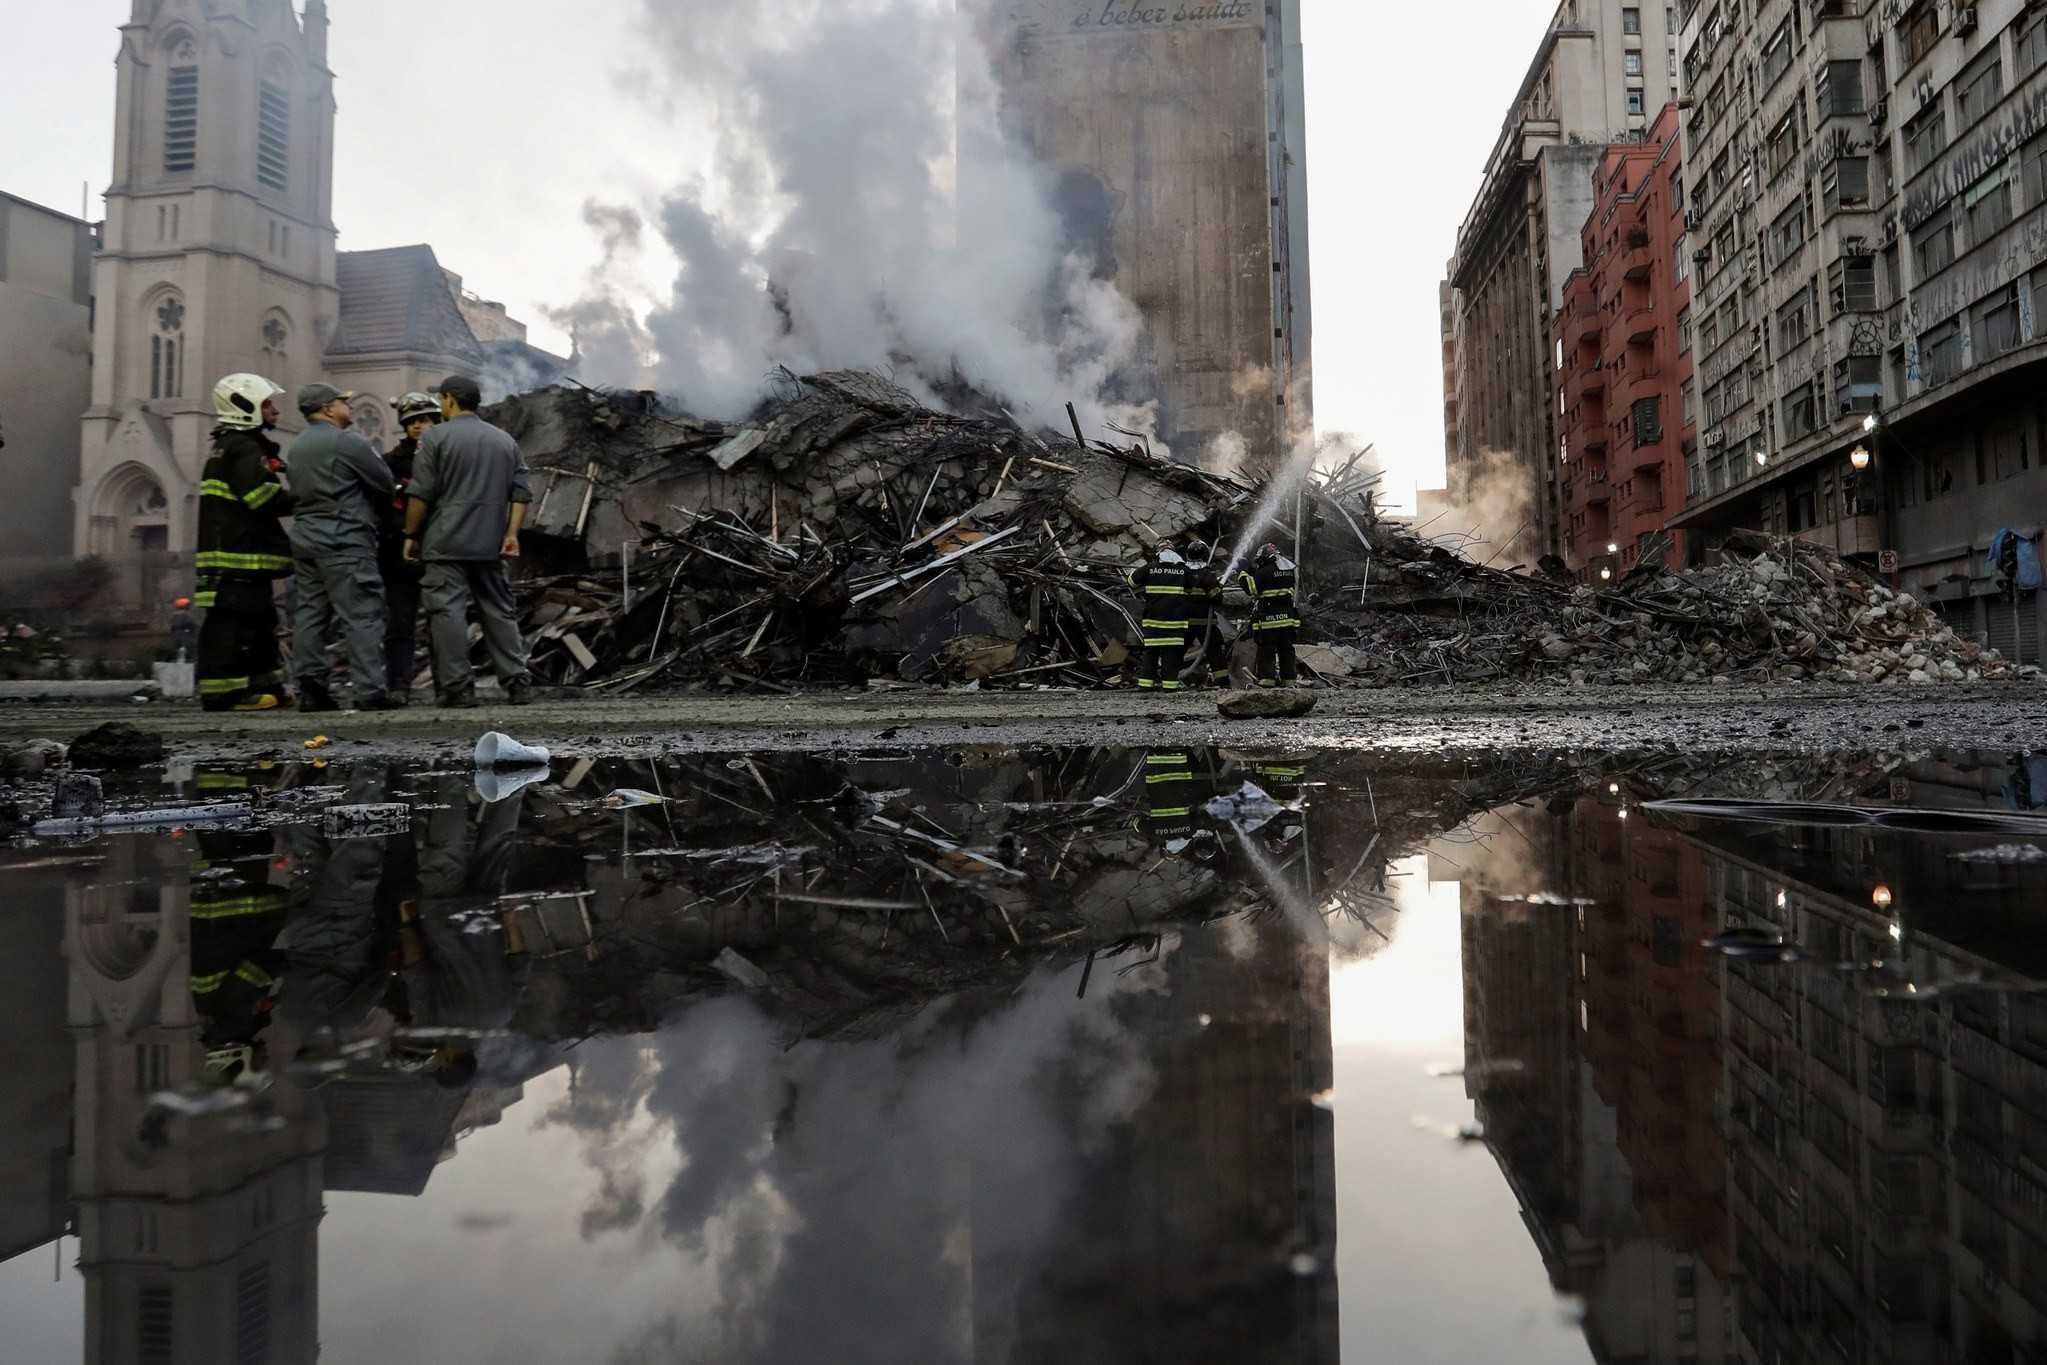 Brazilian firefighters stand in front of the debris of a 24-storey building that collapsed after a fire broken out the previous day resulting in at least one person dead, in downtown Sao Paulo, Brazil, May 2, 2018. (EPA Photo)